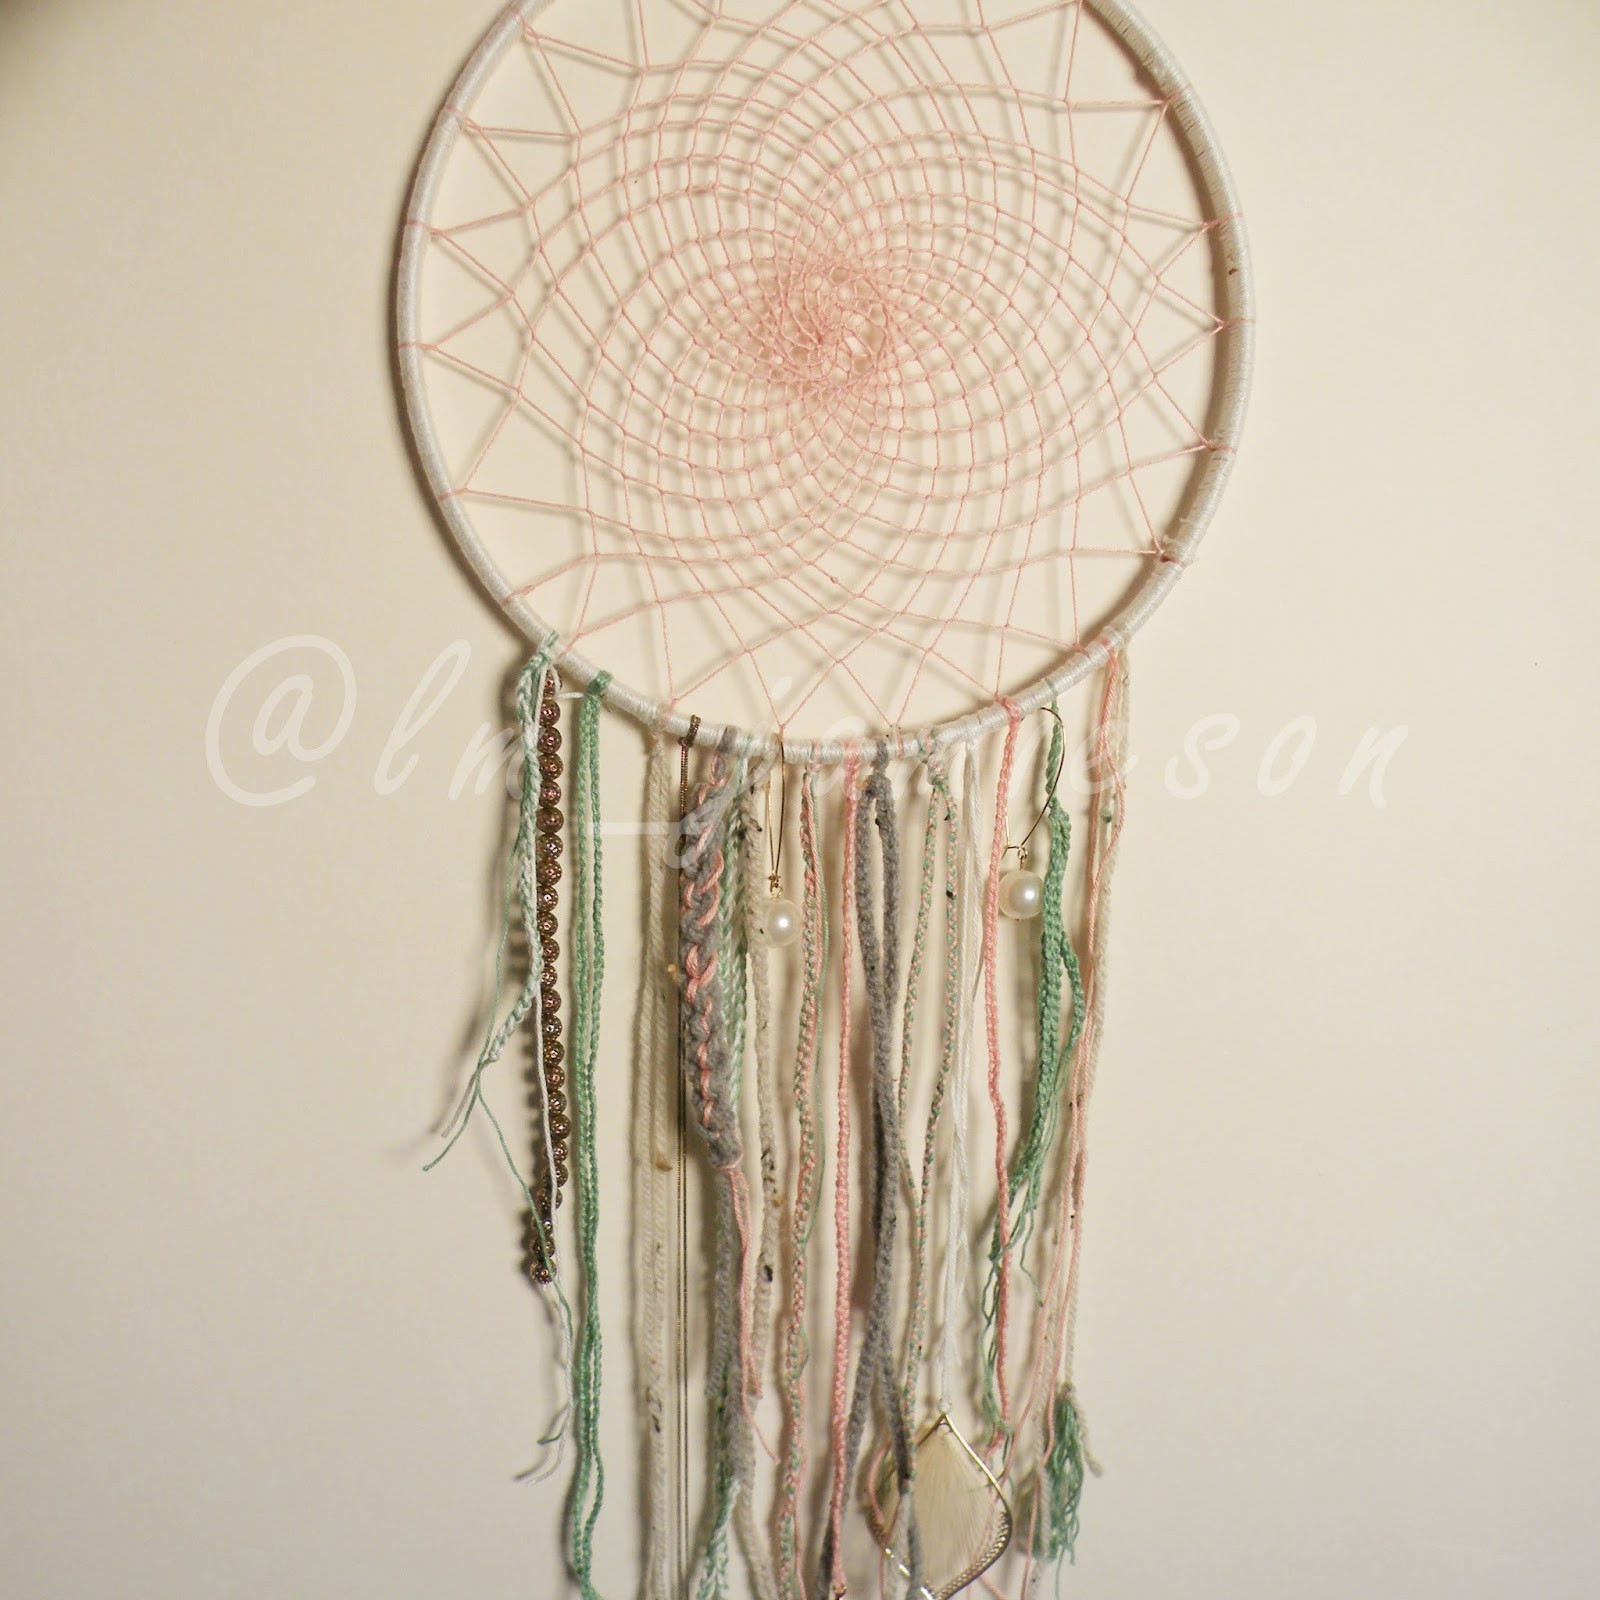 Best ideas about DIY Dream Catchers . Save or Pin Lin Marie Jamieson Easy DIY dream catcher Now.